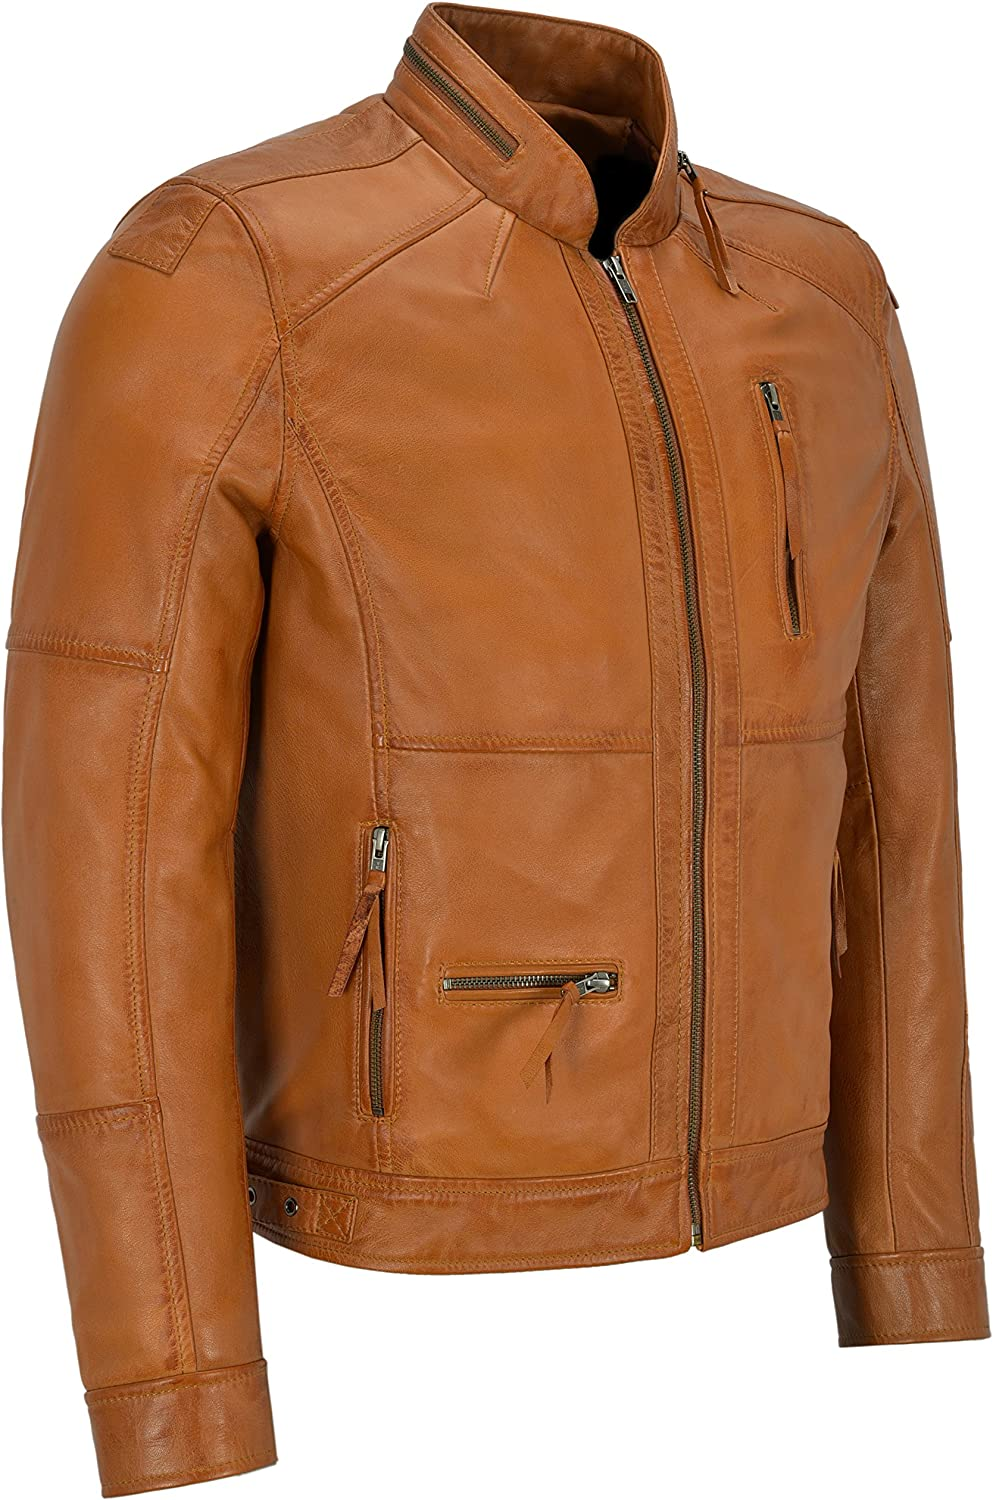 Mens Classic Style Tan Zipcollar Designer Wax Casual Soft Leather Jacket 9056